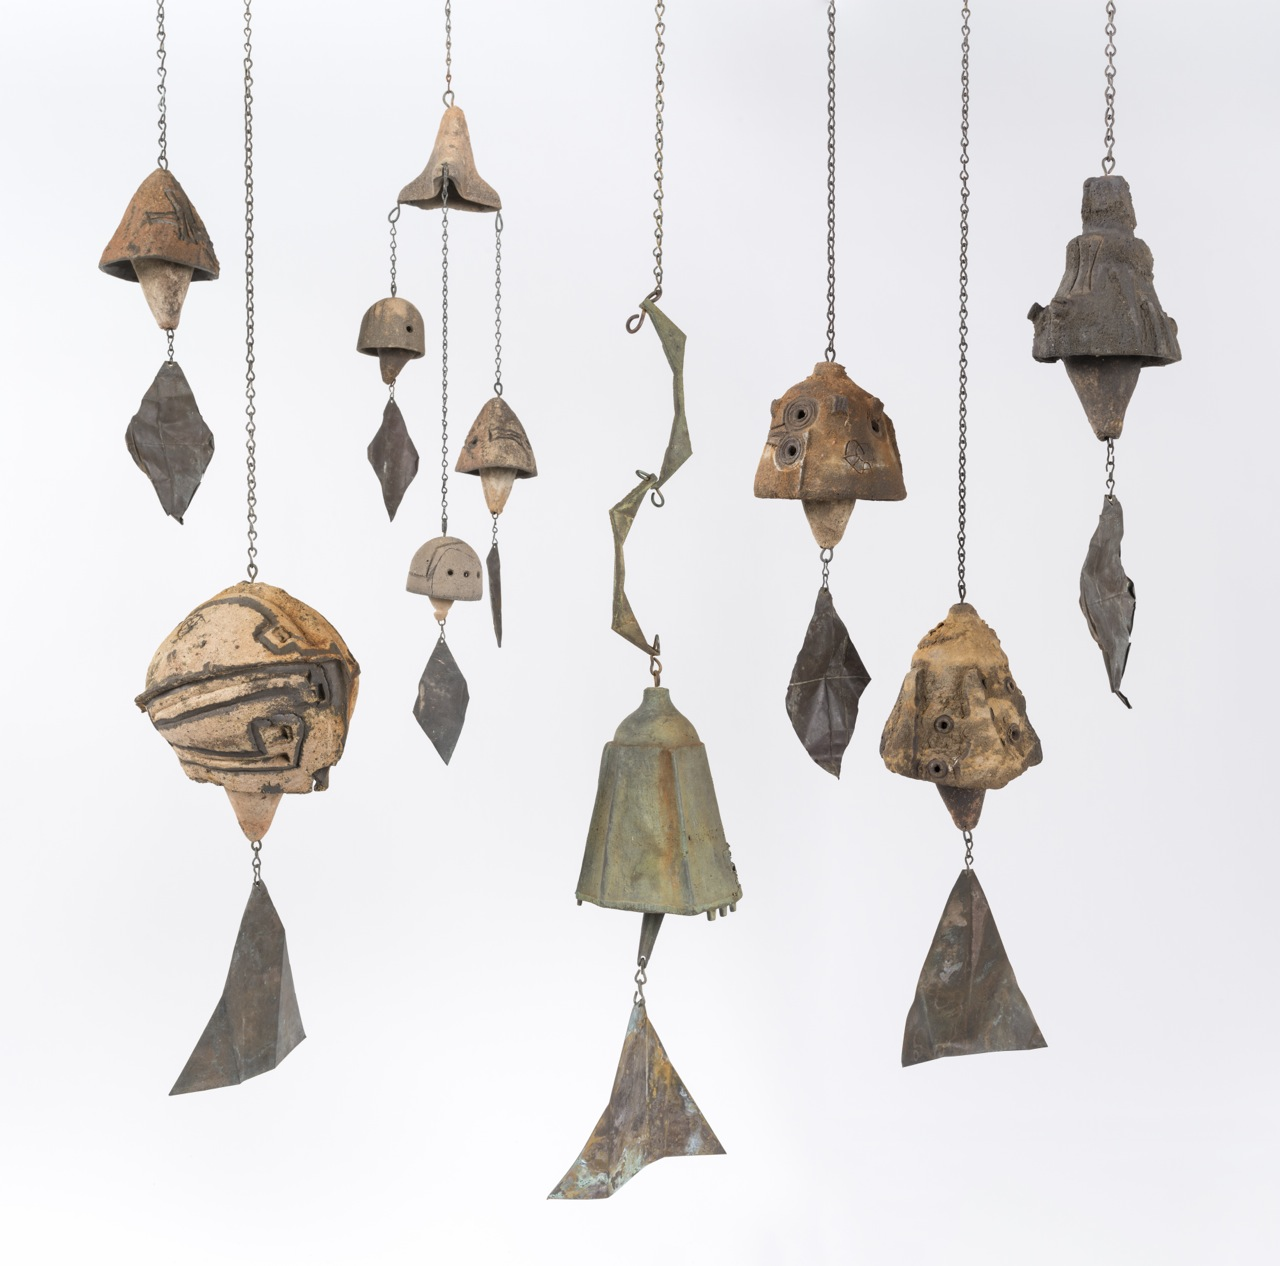 Paolo Soleri, Untitled bells, ca. 1960 – 68. Ceramic, bronze and aluminum with copper wind sails and metal hardware, dimensions variable. Collection of Will Bruder and Louise Roman, Phoenix. © Cosanti Foundation. Images courtesy of SMoCA.